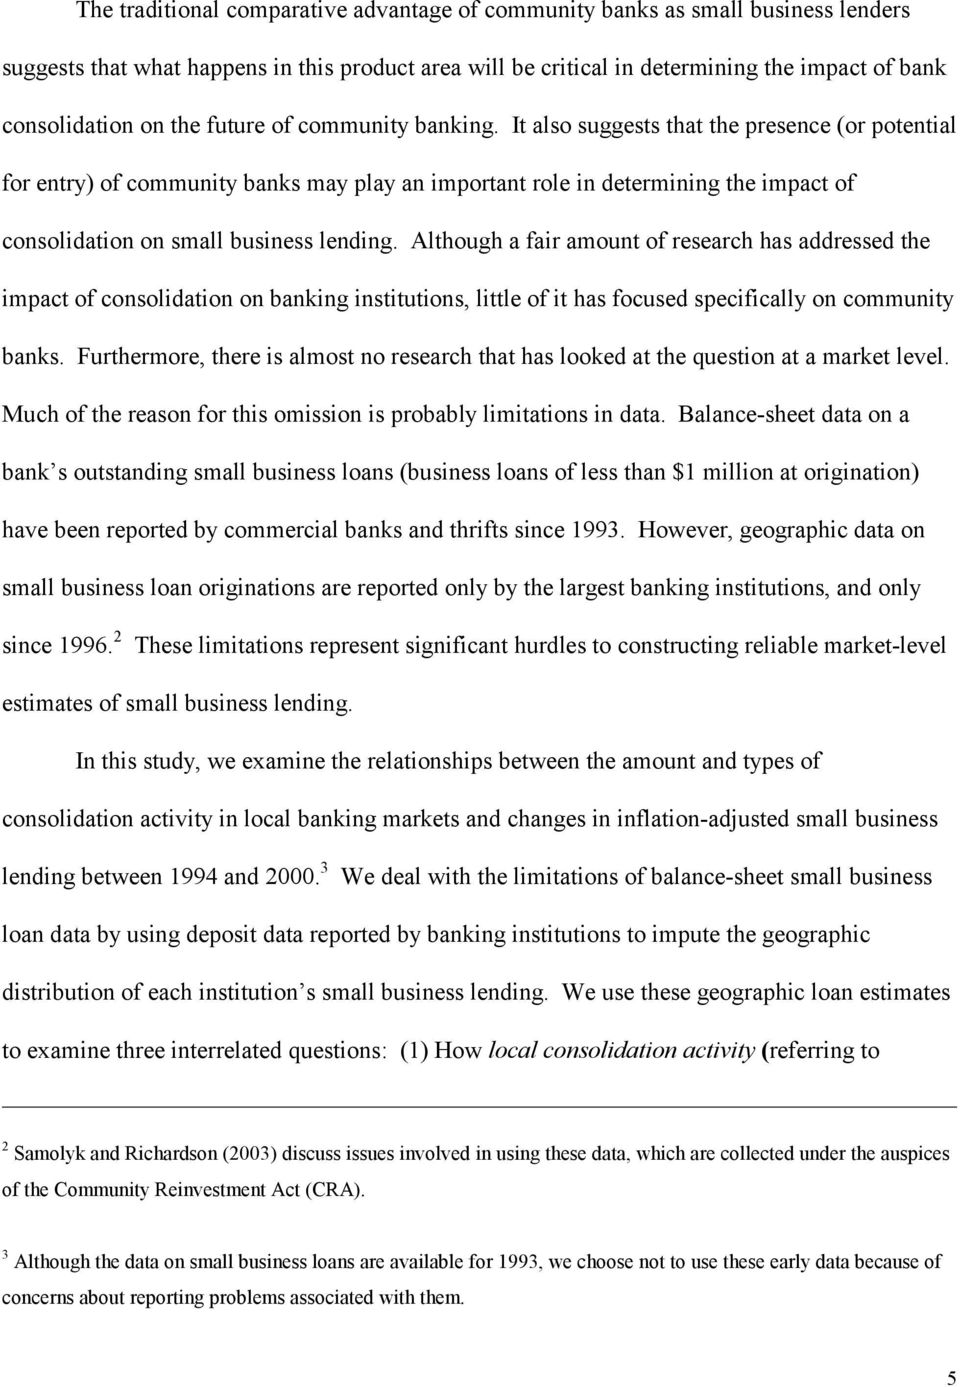 It also suggests that the presence (or potential for entry) of community banks may play an important role in determining the impact of consolidation on small business lending.